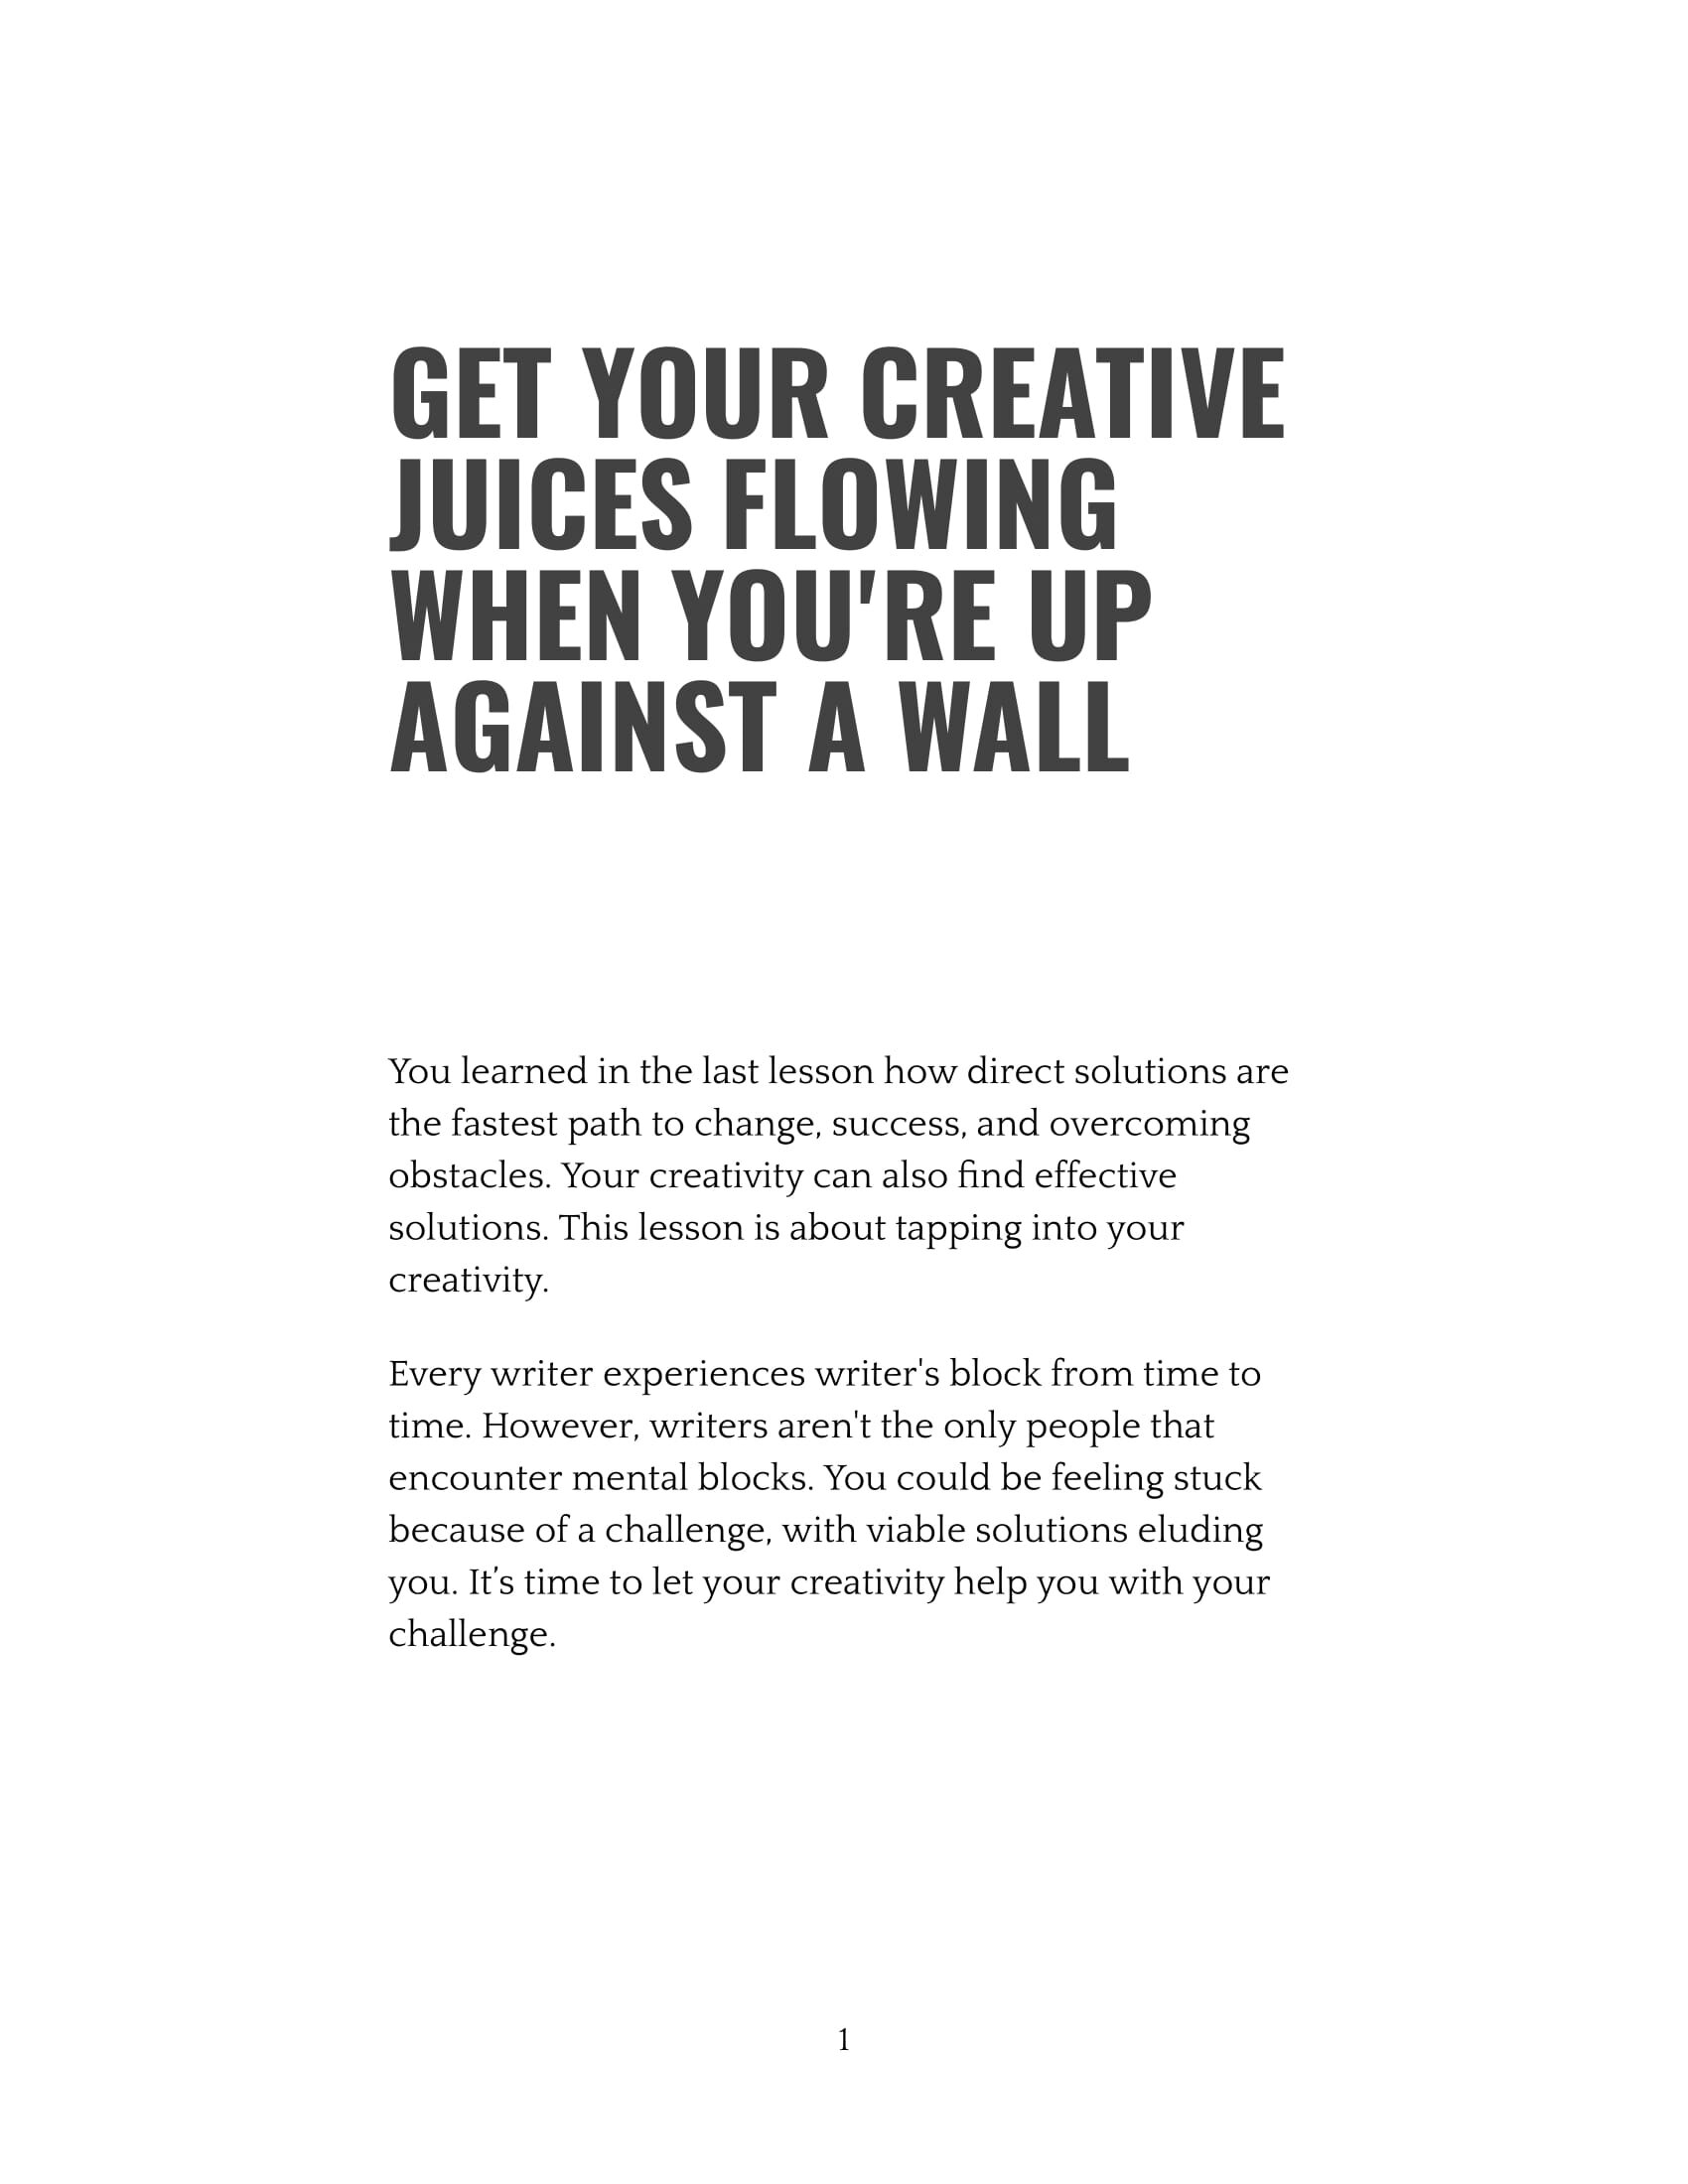 Get Your Creative Juices Flowing When Youre Up Against A Wall-1.jpg